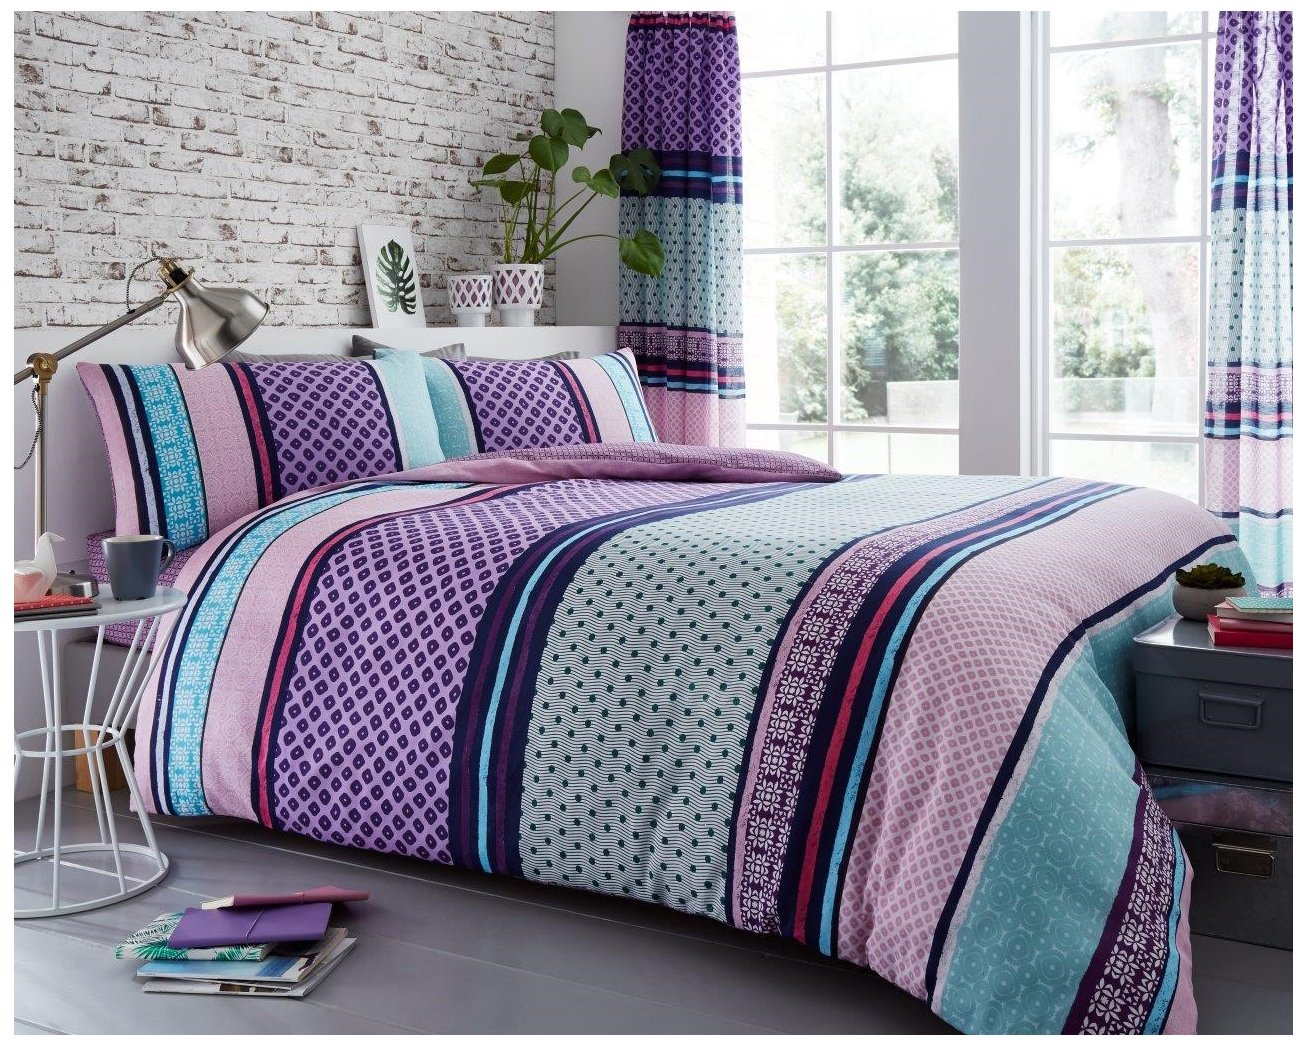 Gaveno Cavailia Luxury CHARTER STRIPE Bed Set with Duvet Cover and Pillow Case, Polyester-Cotton, Natural, Double 11149613